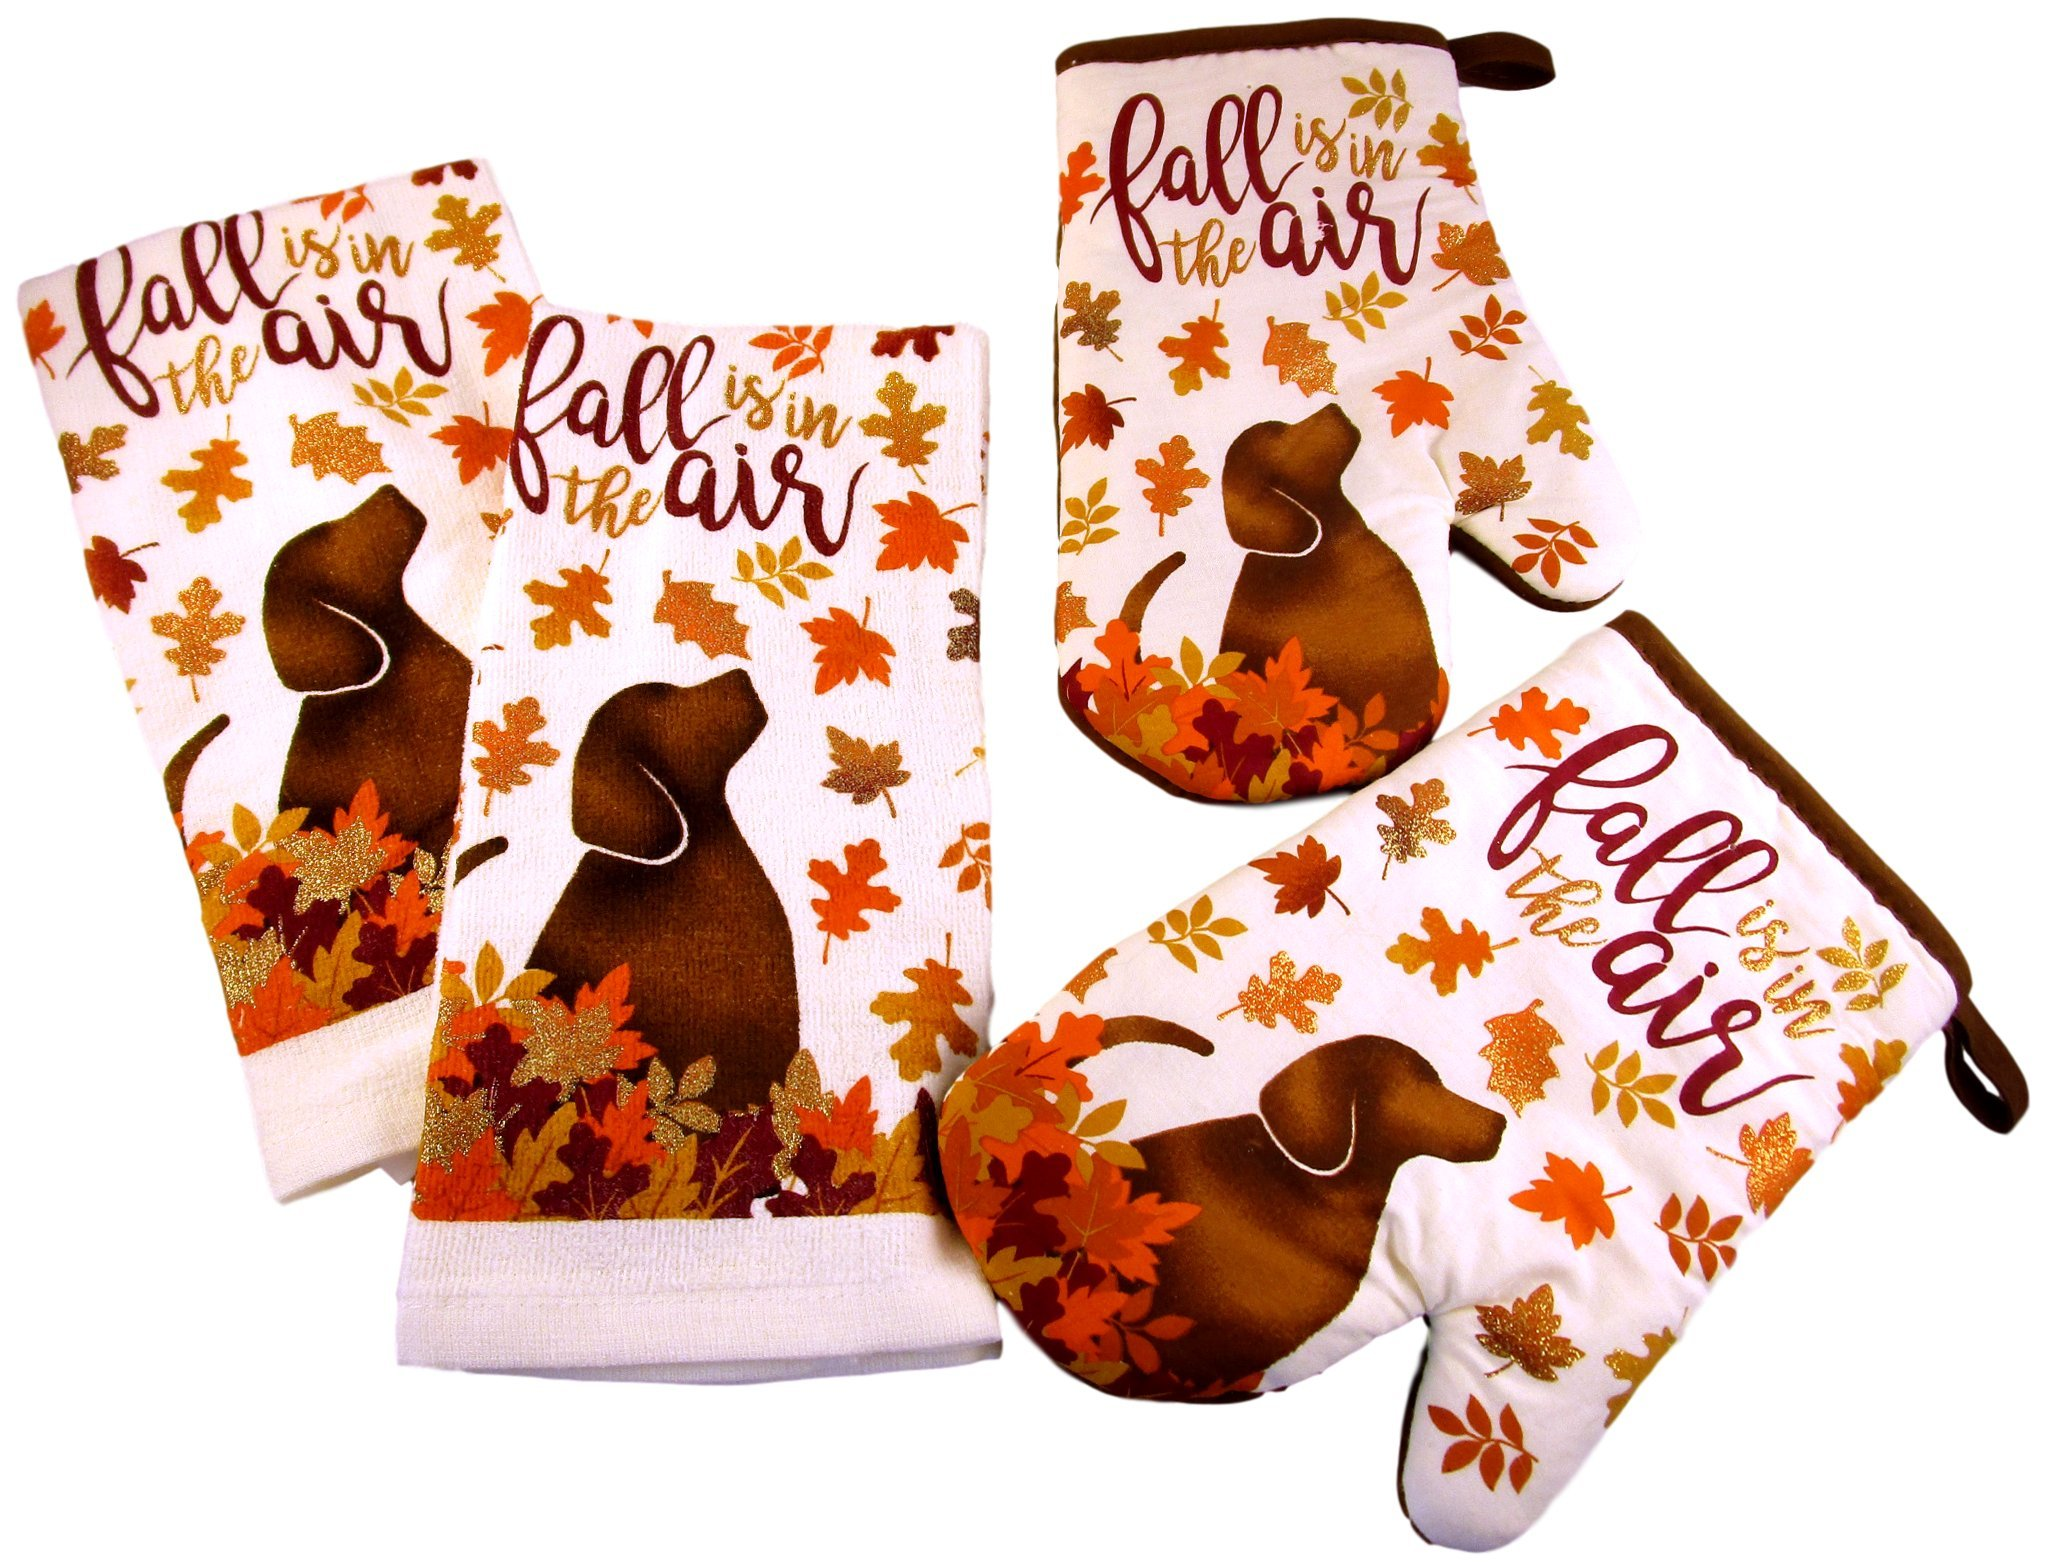 Thanksgiving Kitchen Towels and Oven Mitts - Bundle of 4 Items: 2 Dish Towels and 2 Oven Mitts (Brown Dog - Fall in The Air)